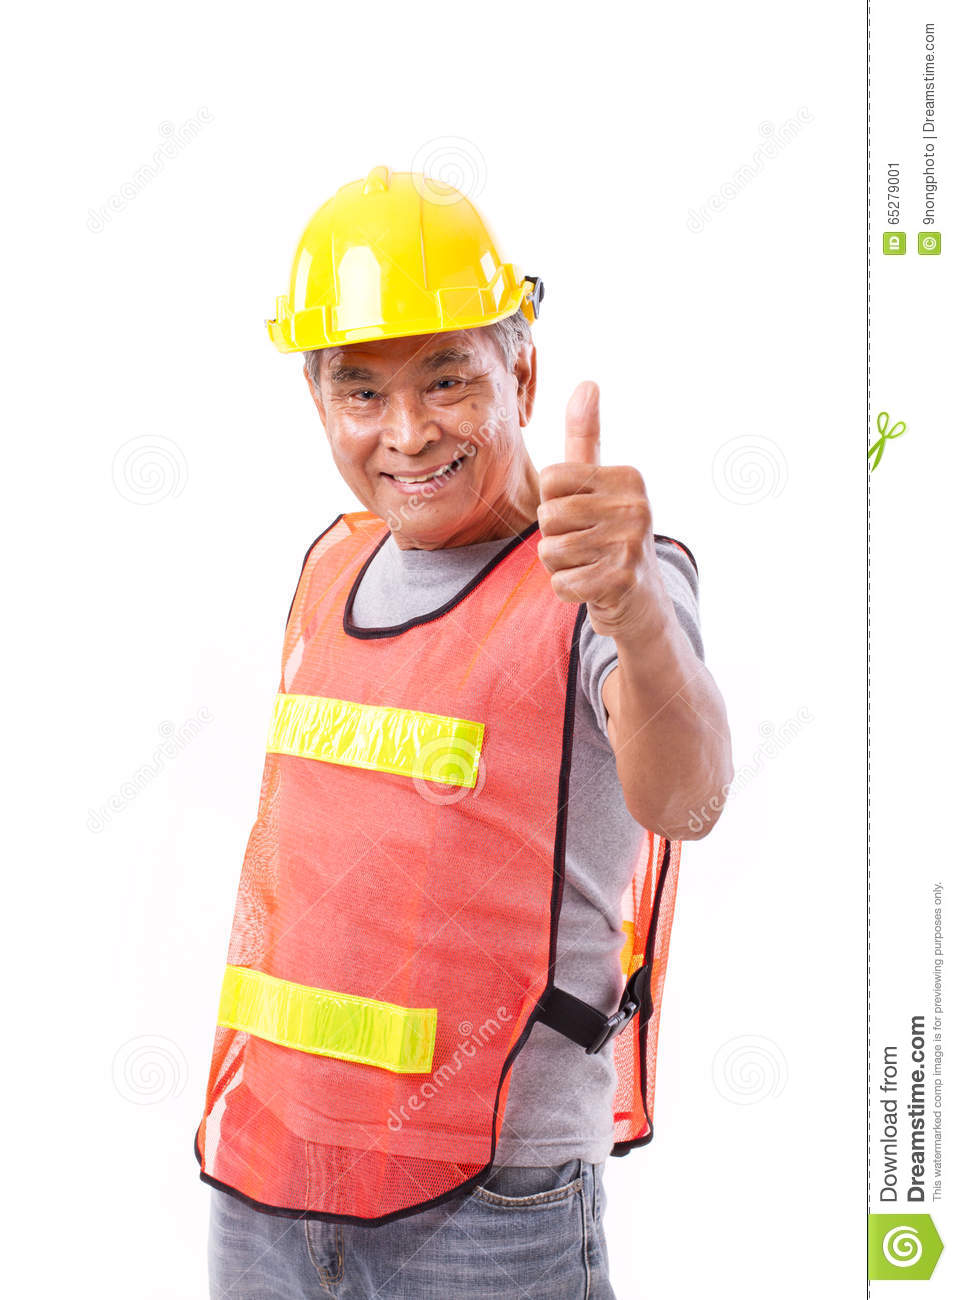 Happy, smiling senior construction worker giving thumb up